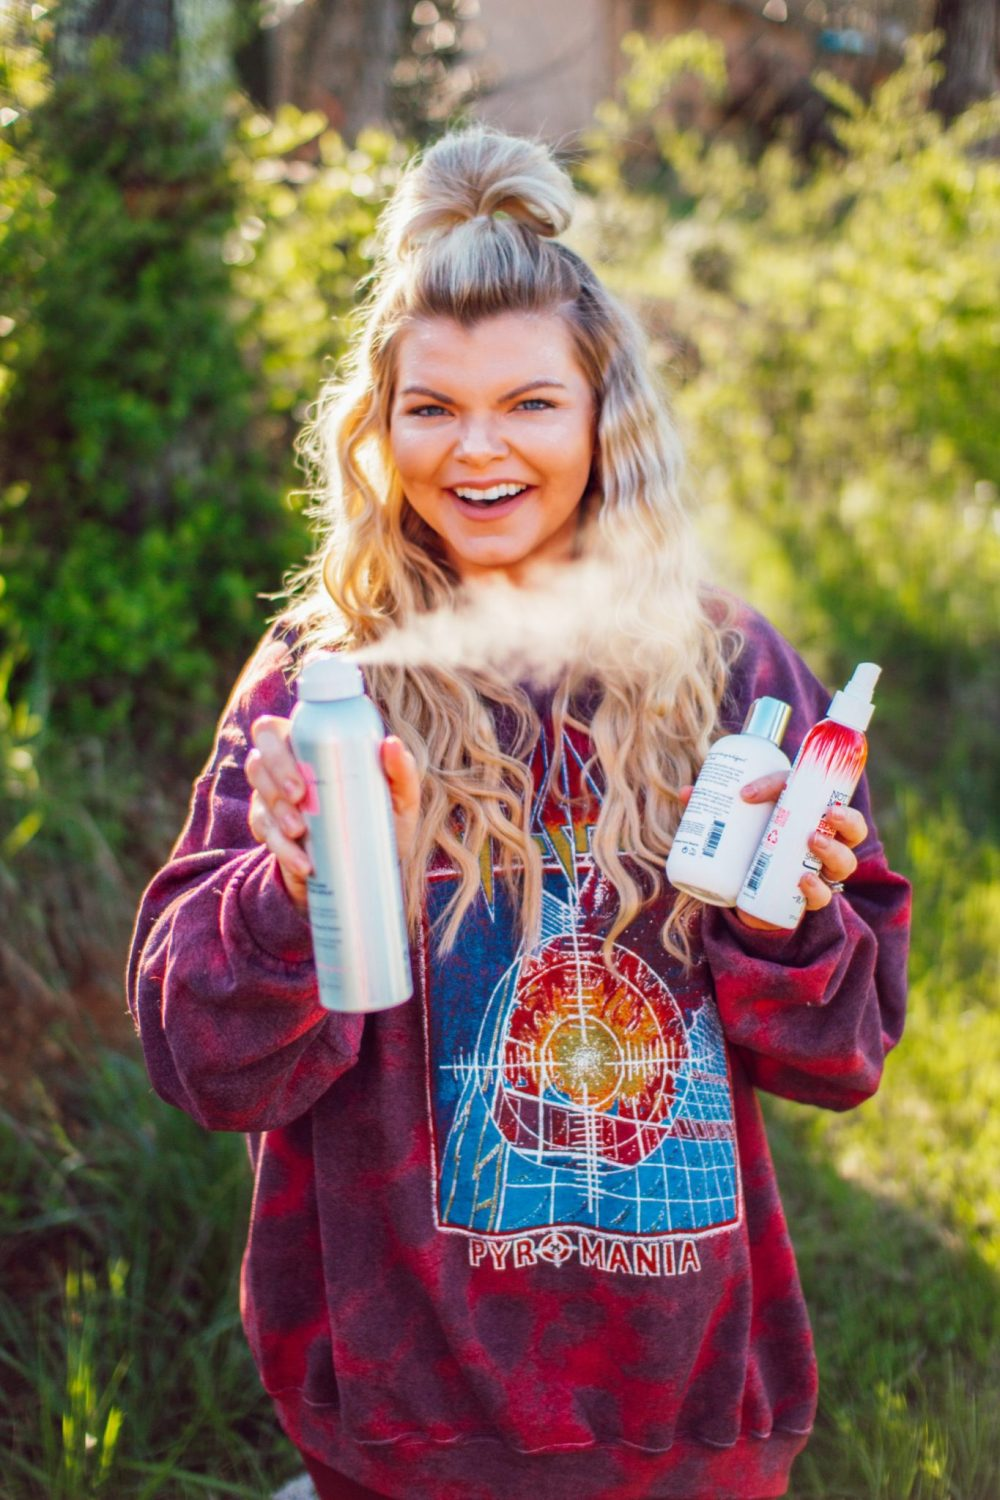 Lacey Douthat of The Glitter Gospel shares tips from her stylist to keep your hair fresh during quarantine. Hair Care, beige Blonde, Half up half down hairstyles, def leopard sweatshirt, knoxville hair salon, tennessee stylist, hairstyle ideas, purple shampoo